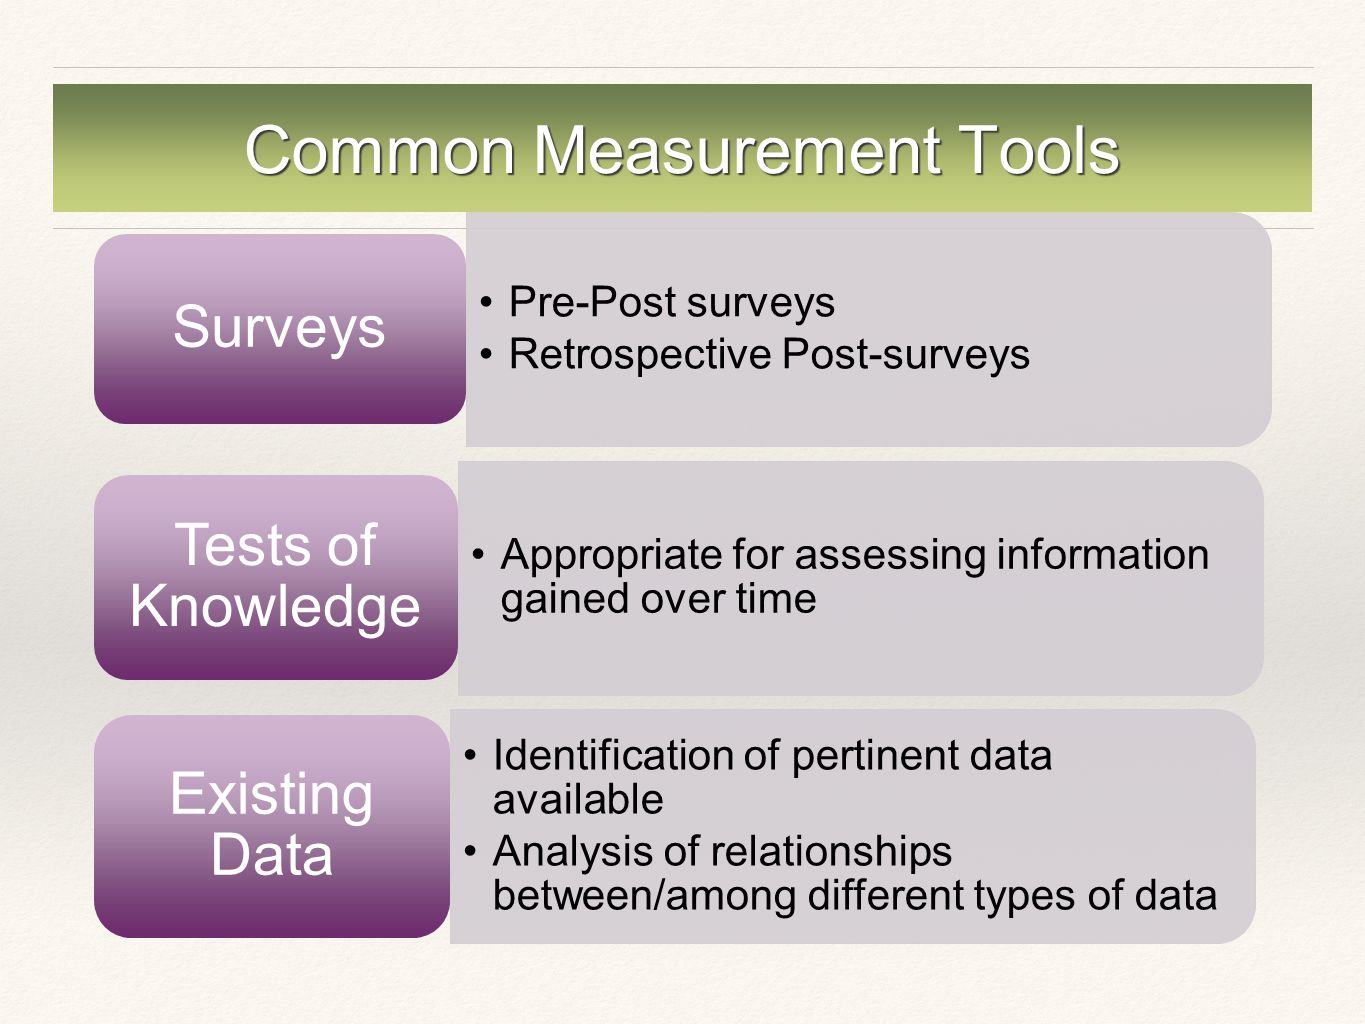 Common Measurement Tools Pre-Post surveys Retrospective Post-surveys Surveys Appropriate for assessing information gained over time Tests of Knowledge Identification of pertinent data available Analysis of relationships between/among different types of data Existing Data